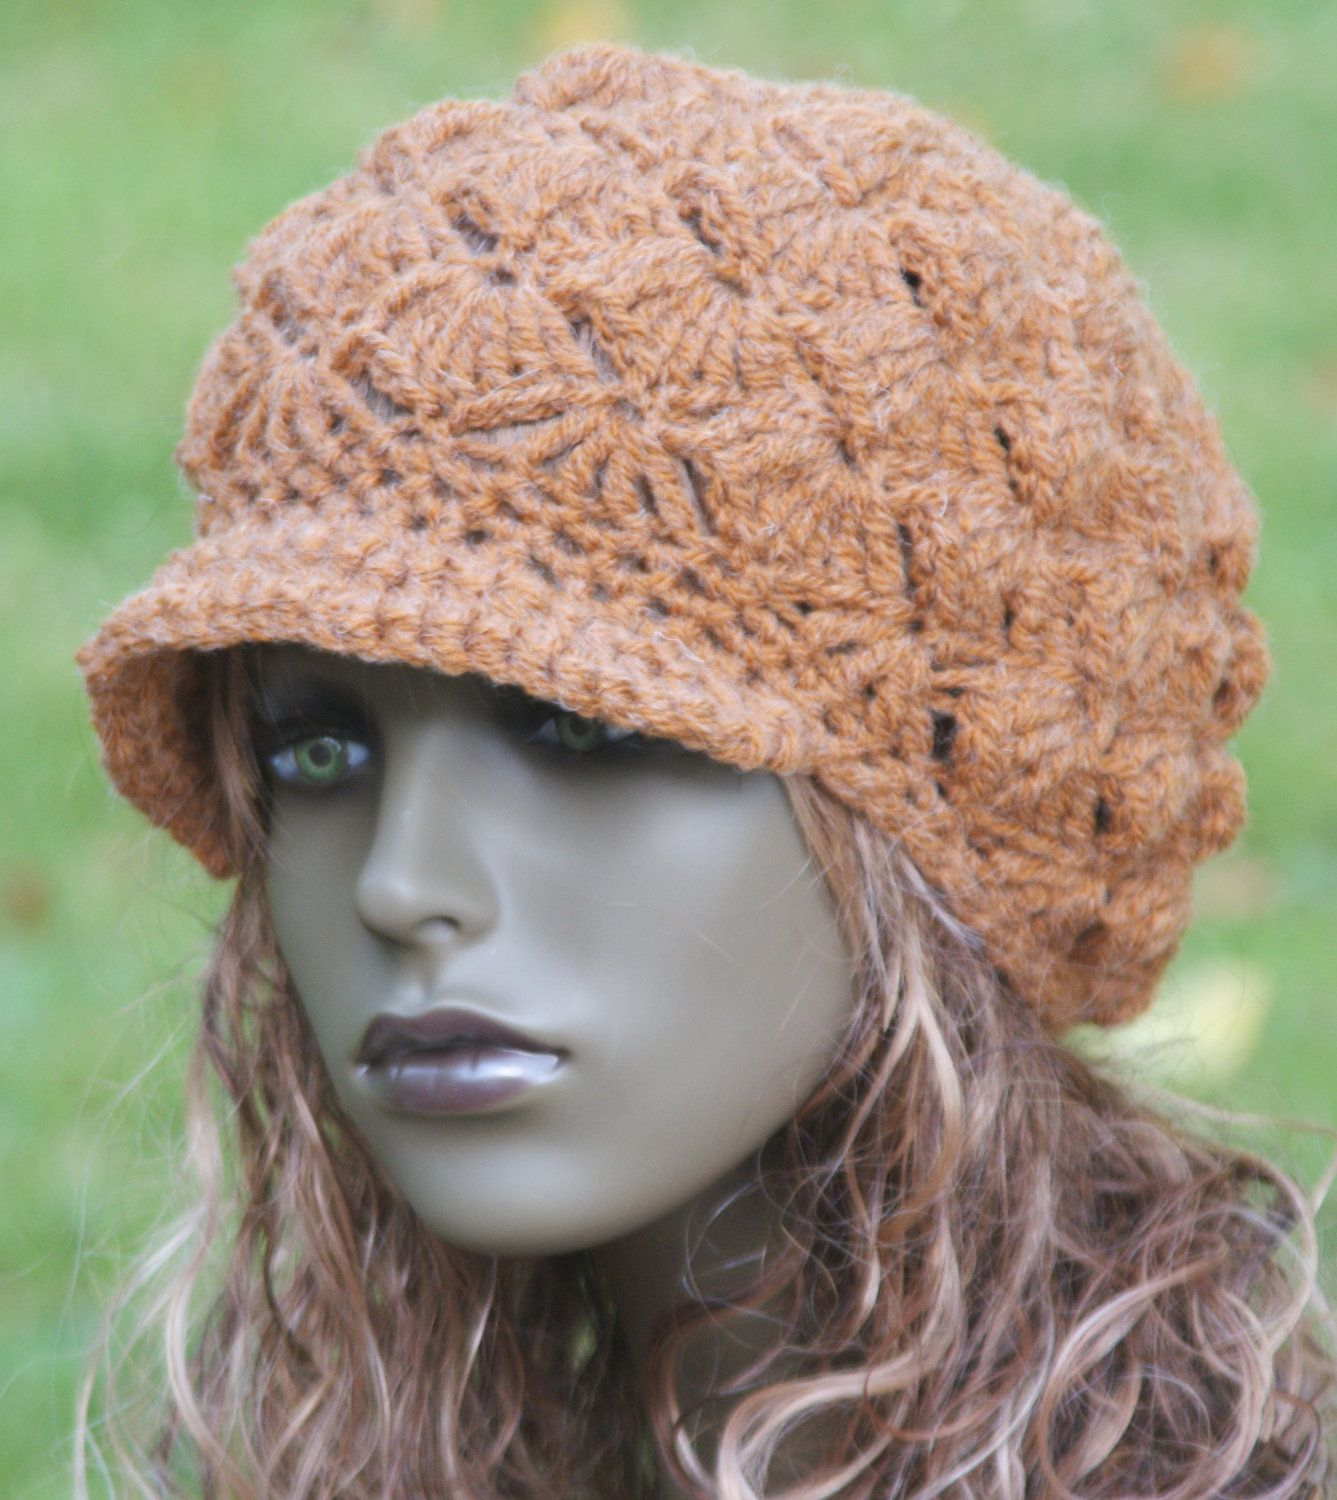 Newsboy hat pattern crocheted pattern pdf only n033 crochet newsboy hat pattern crocheted pattern pdf only n033 bankloansurffo Images